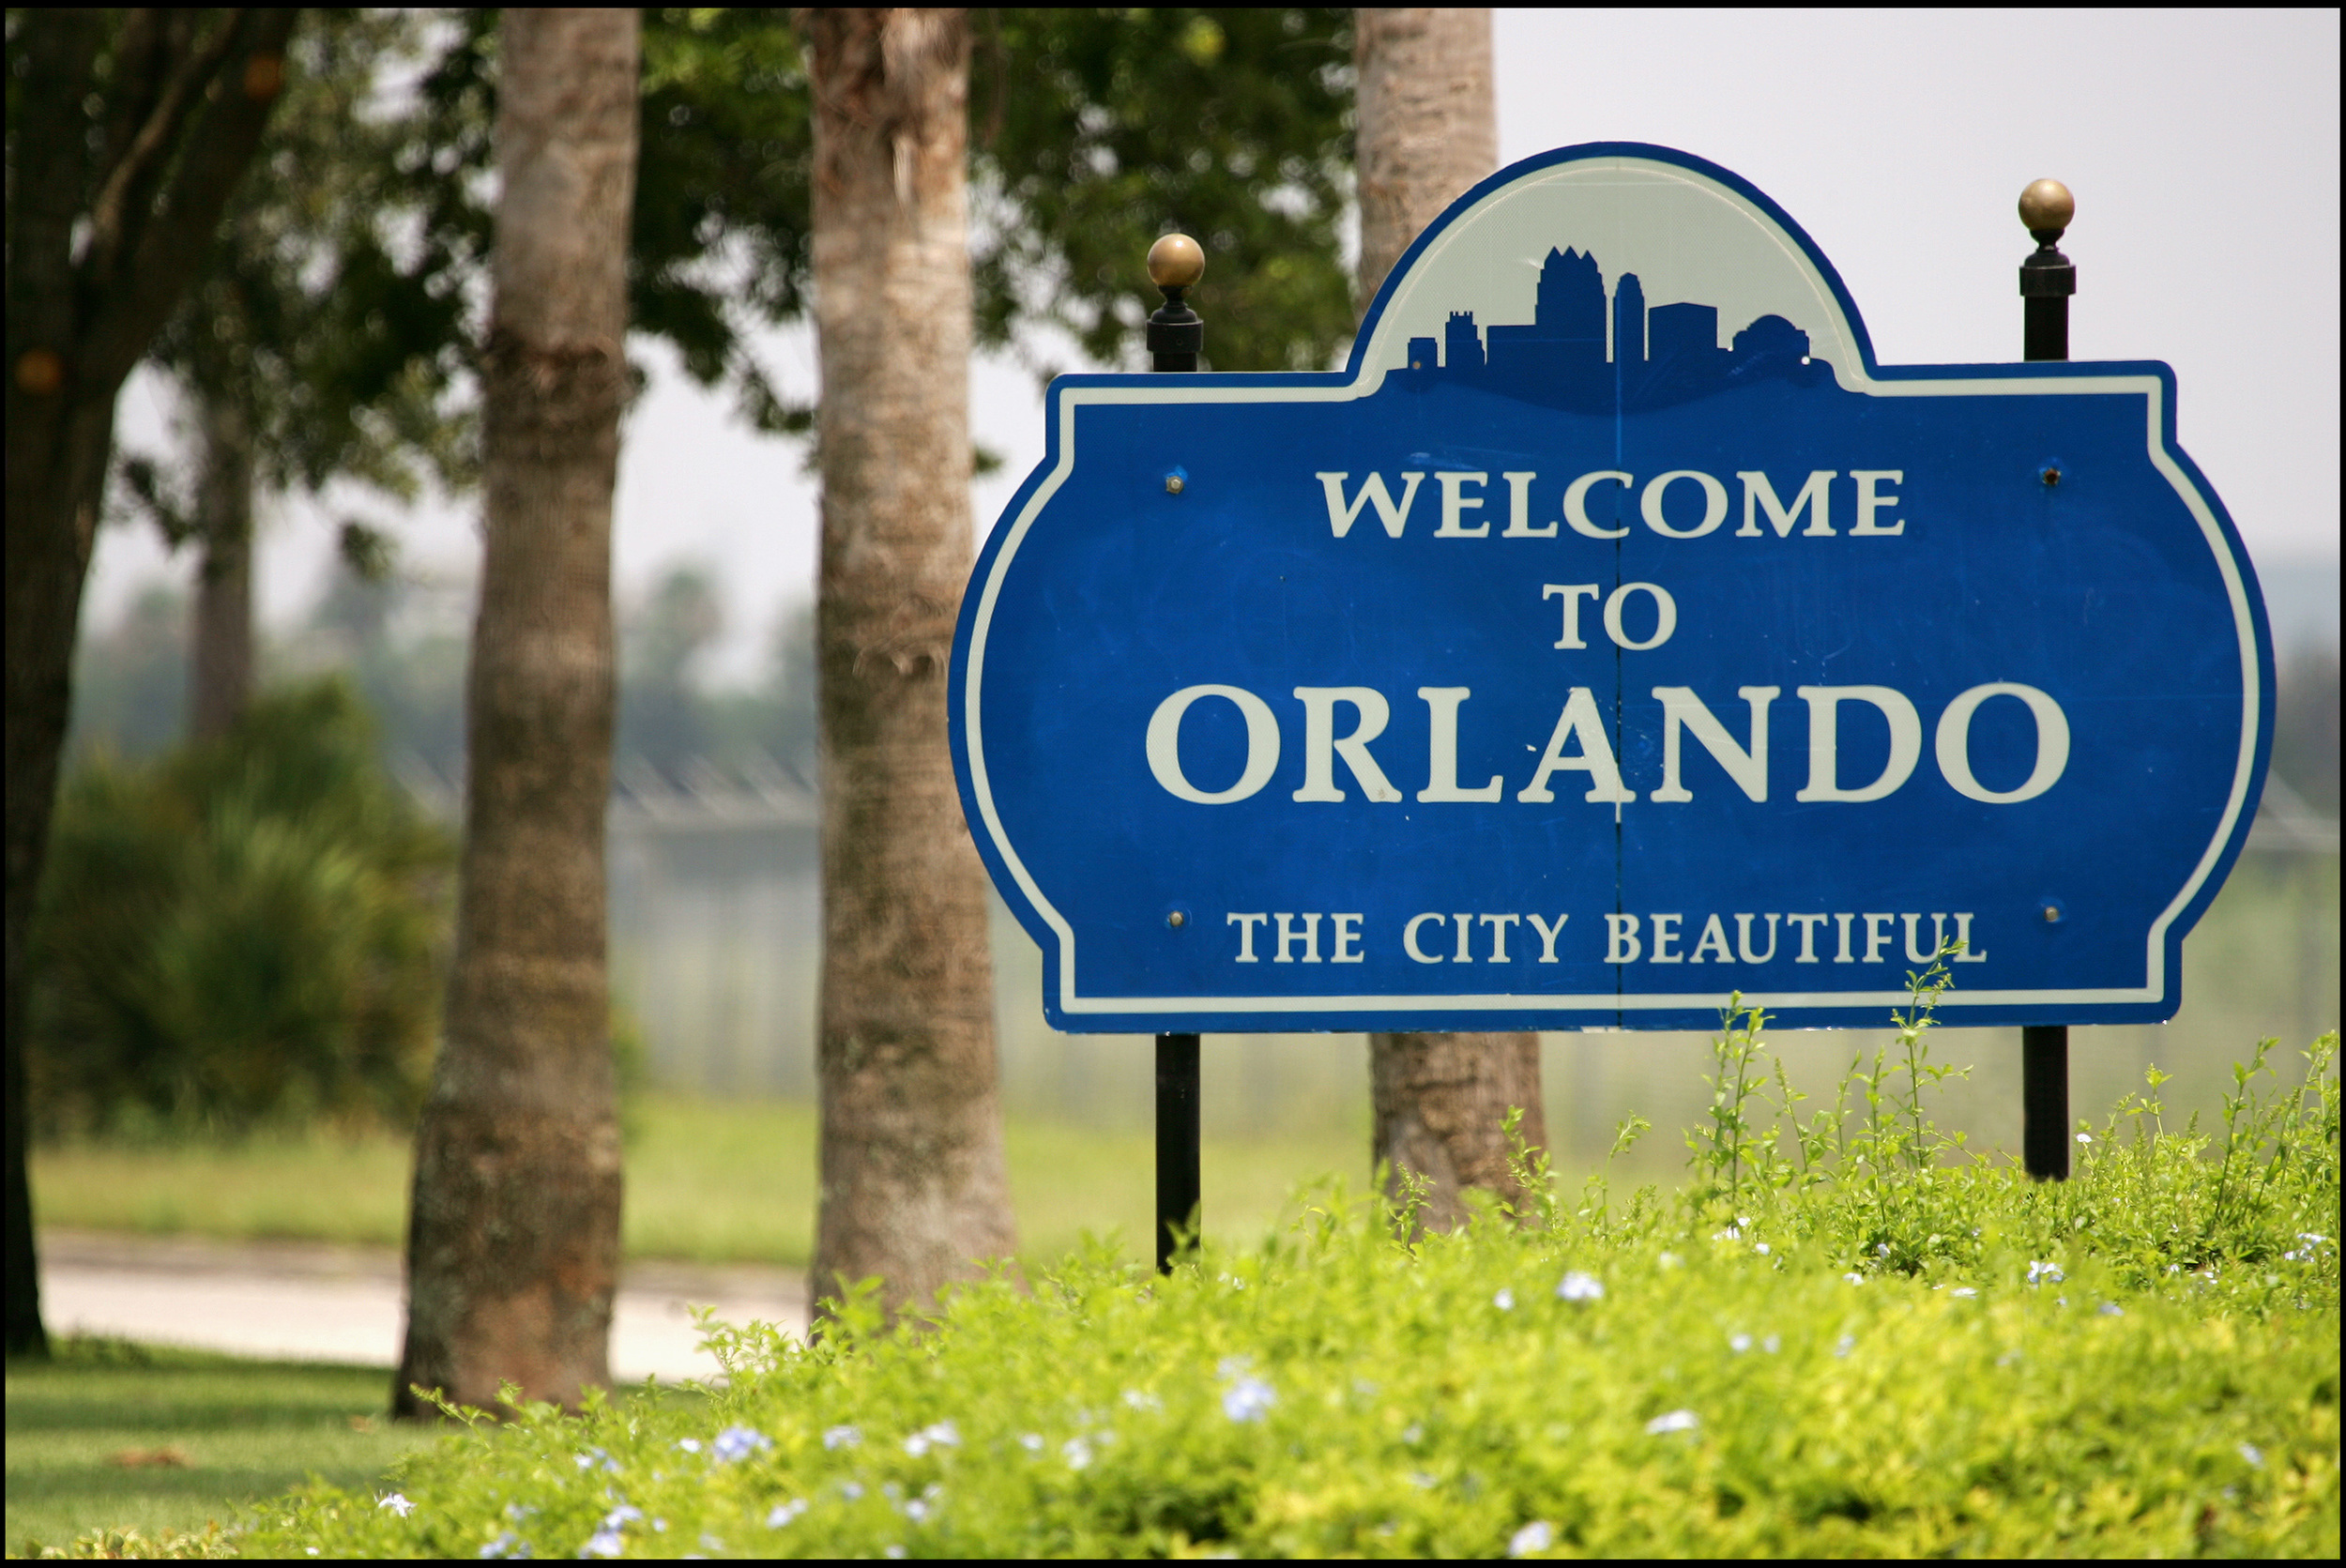 Orlando Bicycle Accident Lawsuit